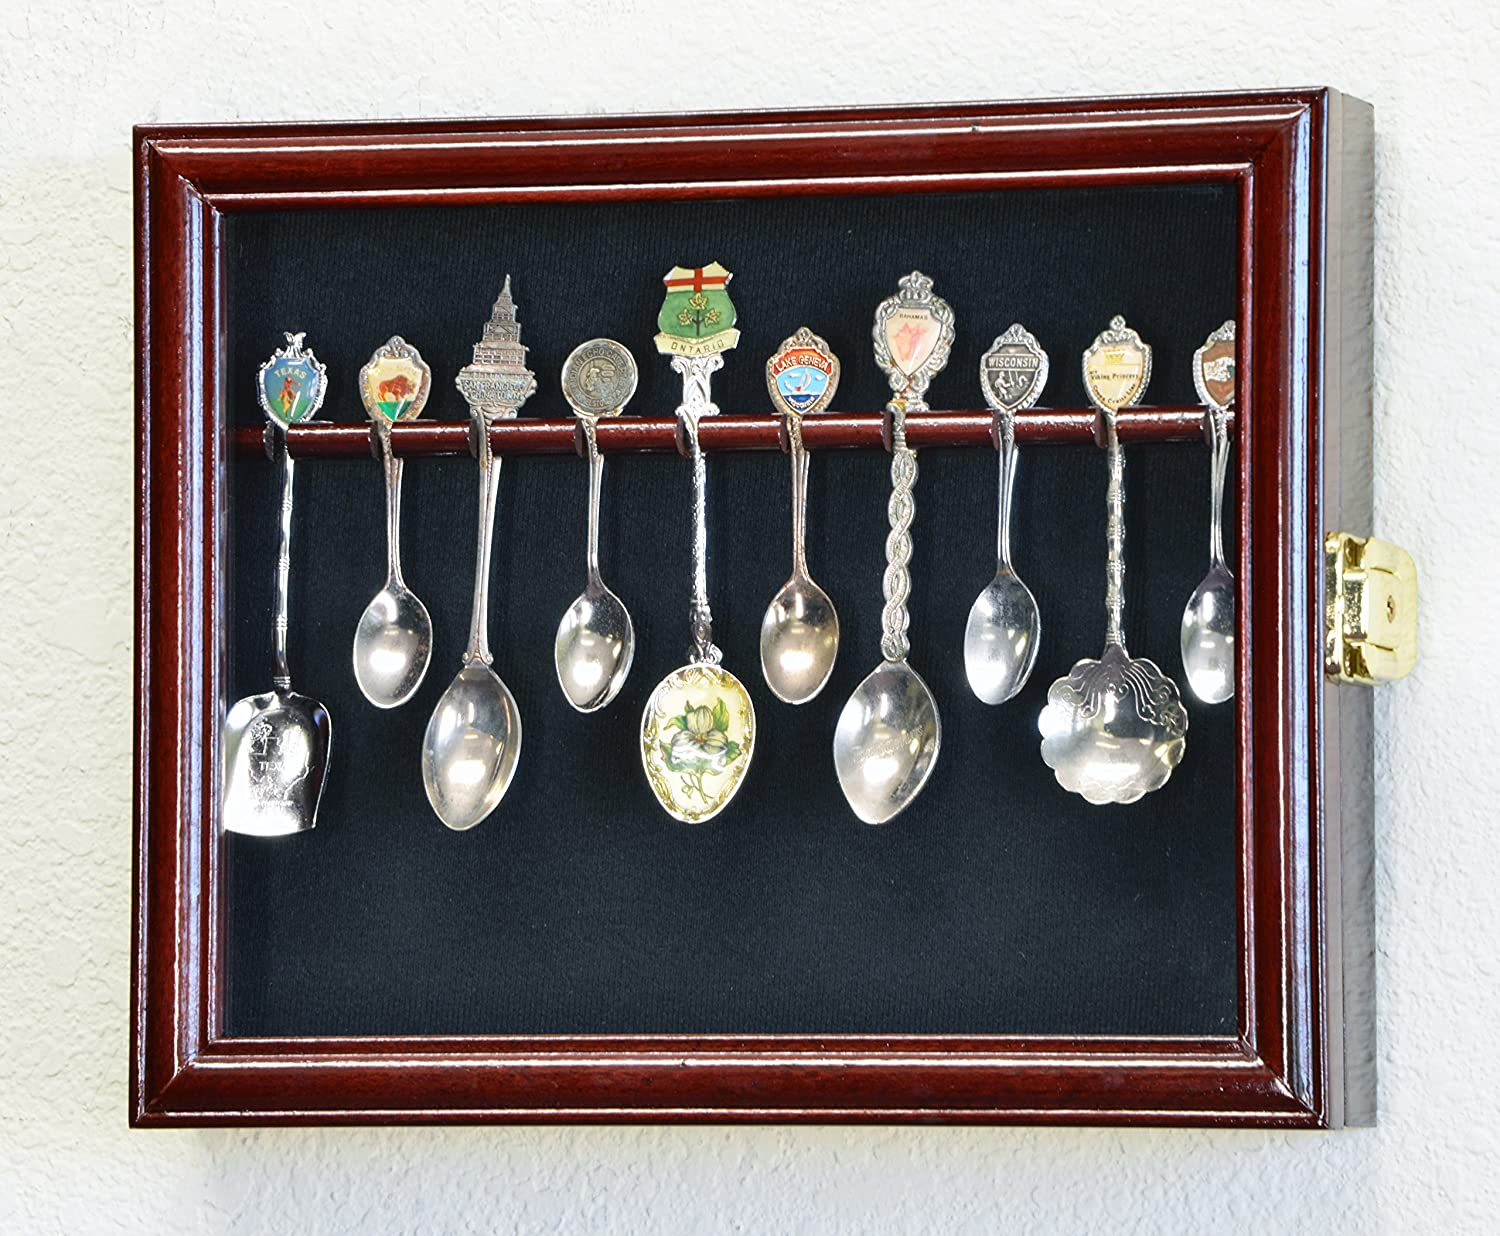 10 Spoon Display Case Cabinet Holder Rack Wall Mounted -Cherry Finish